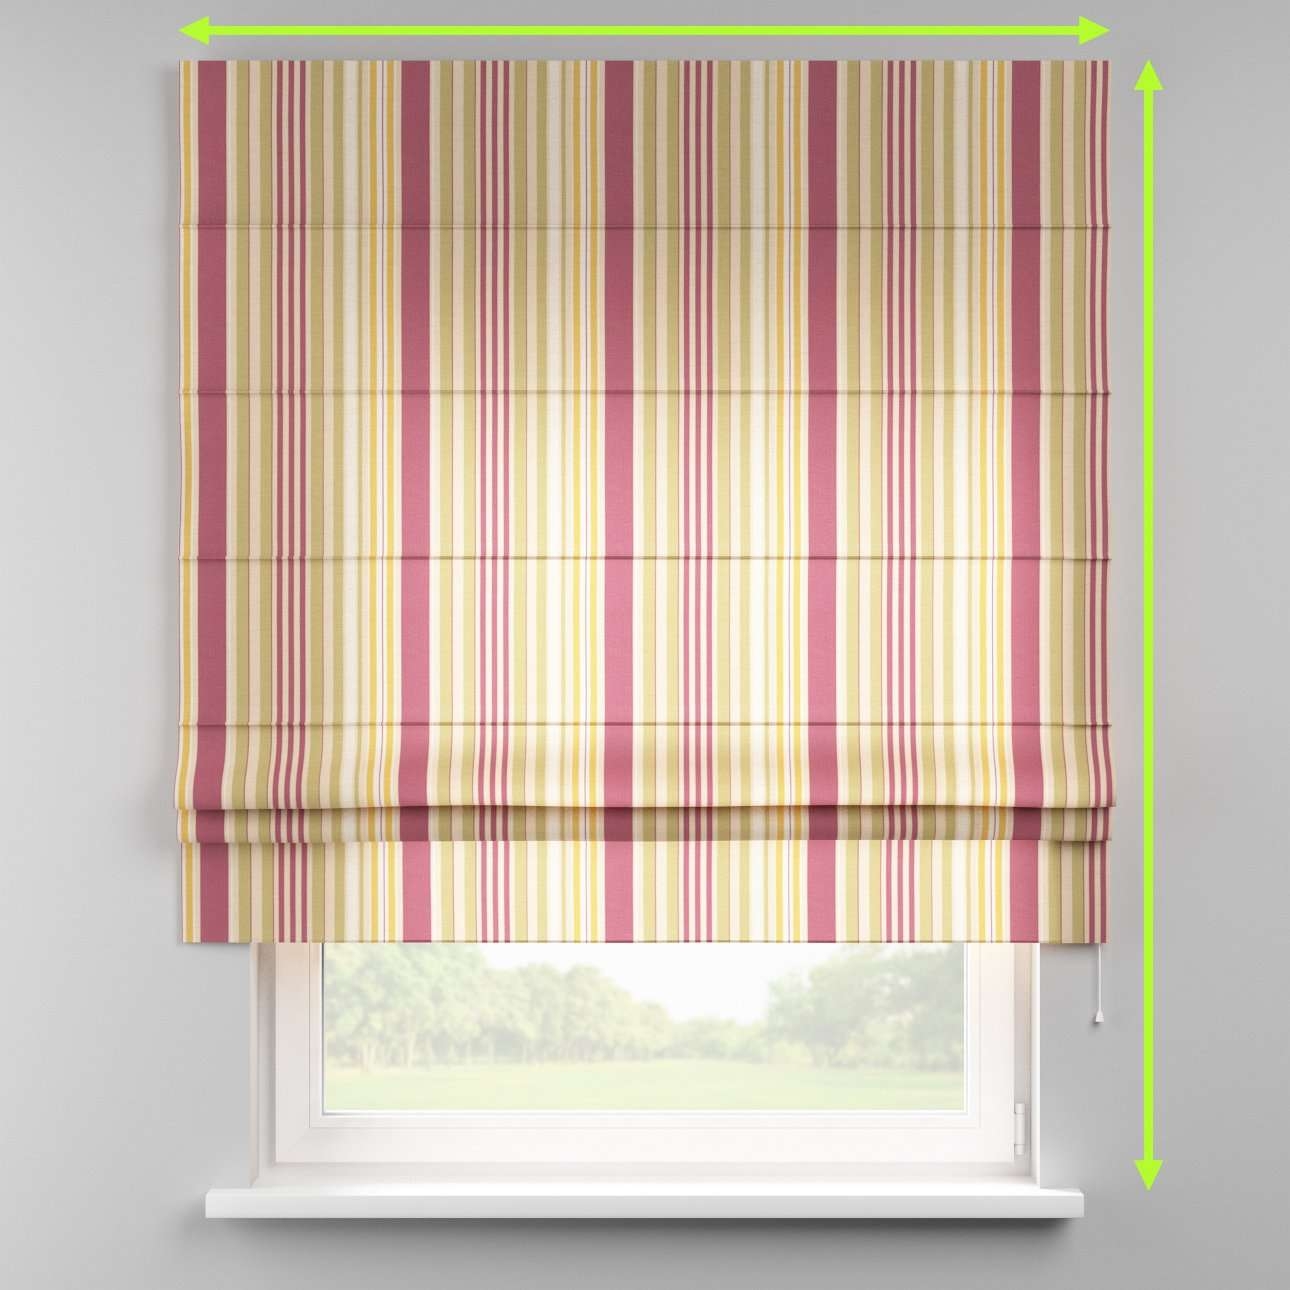 Padva roman blind  in collection Londres, fabric: 122-09